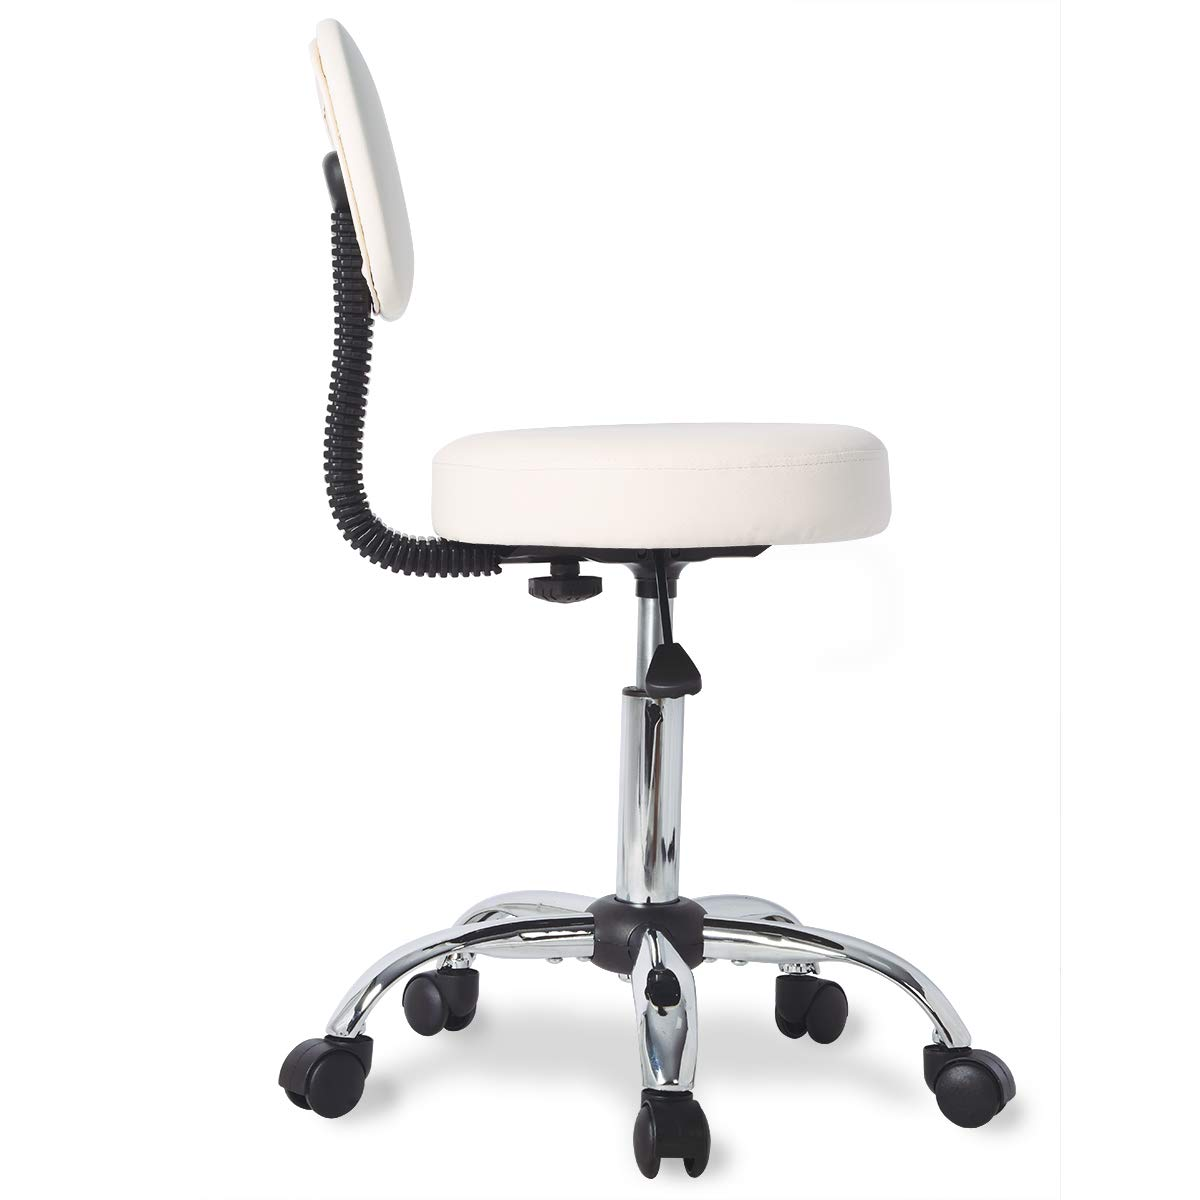 Urest Stool Chair Rolling Adjustable Swivel Office Desk Chair with Back and Wheels for Home,Office,Massage,Spa,Esthetician in Beige ...